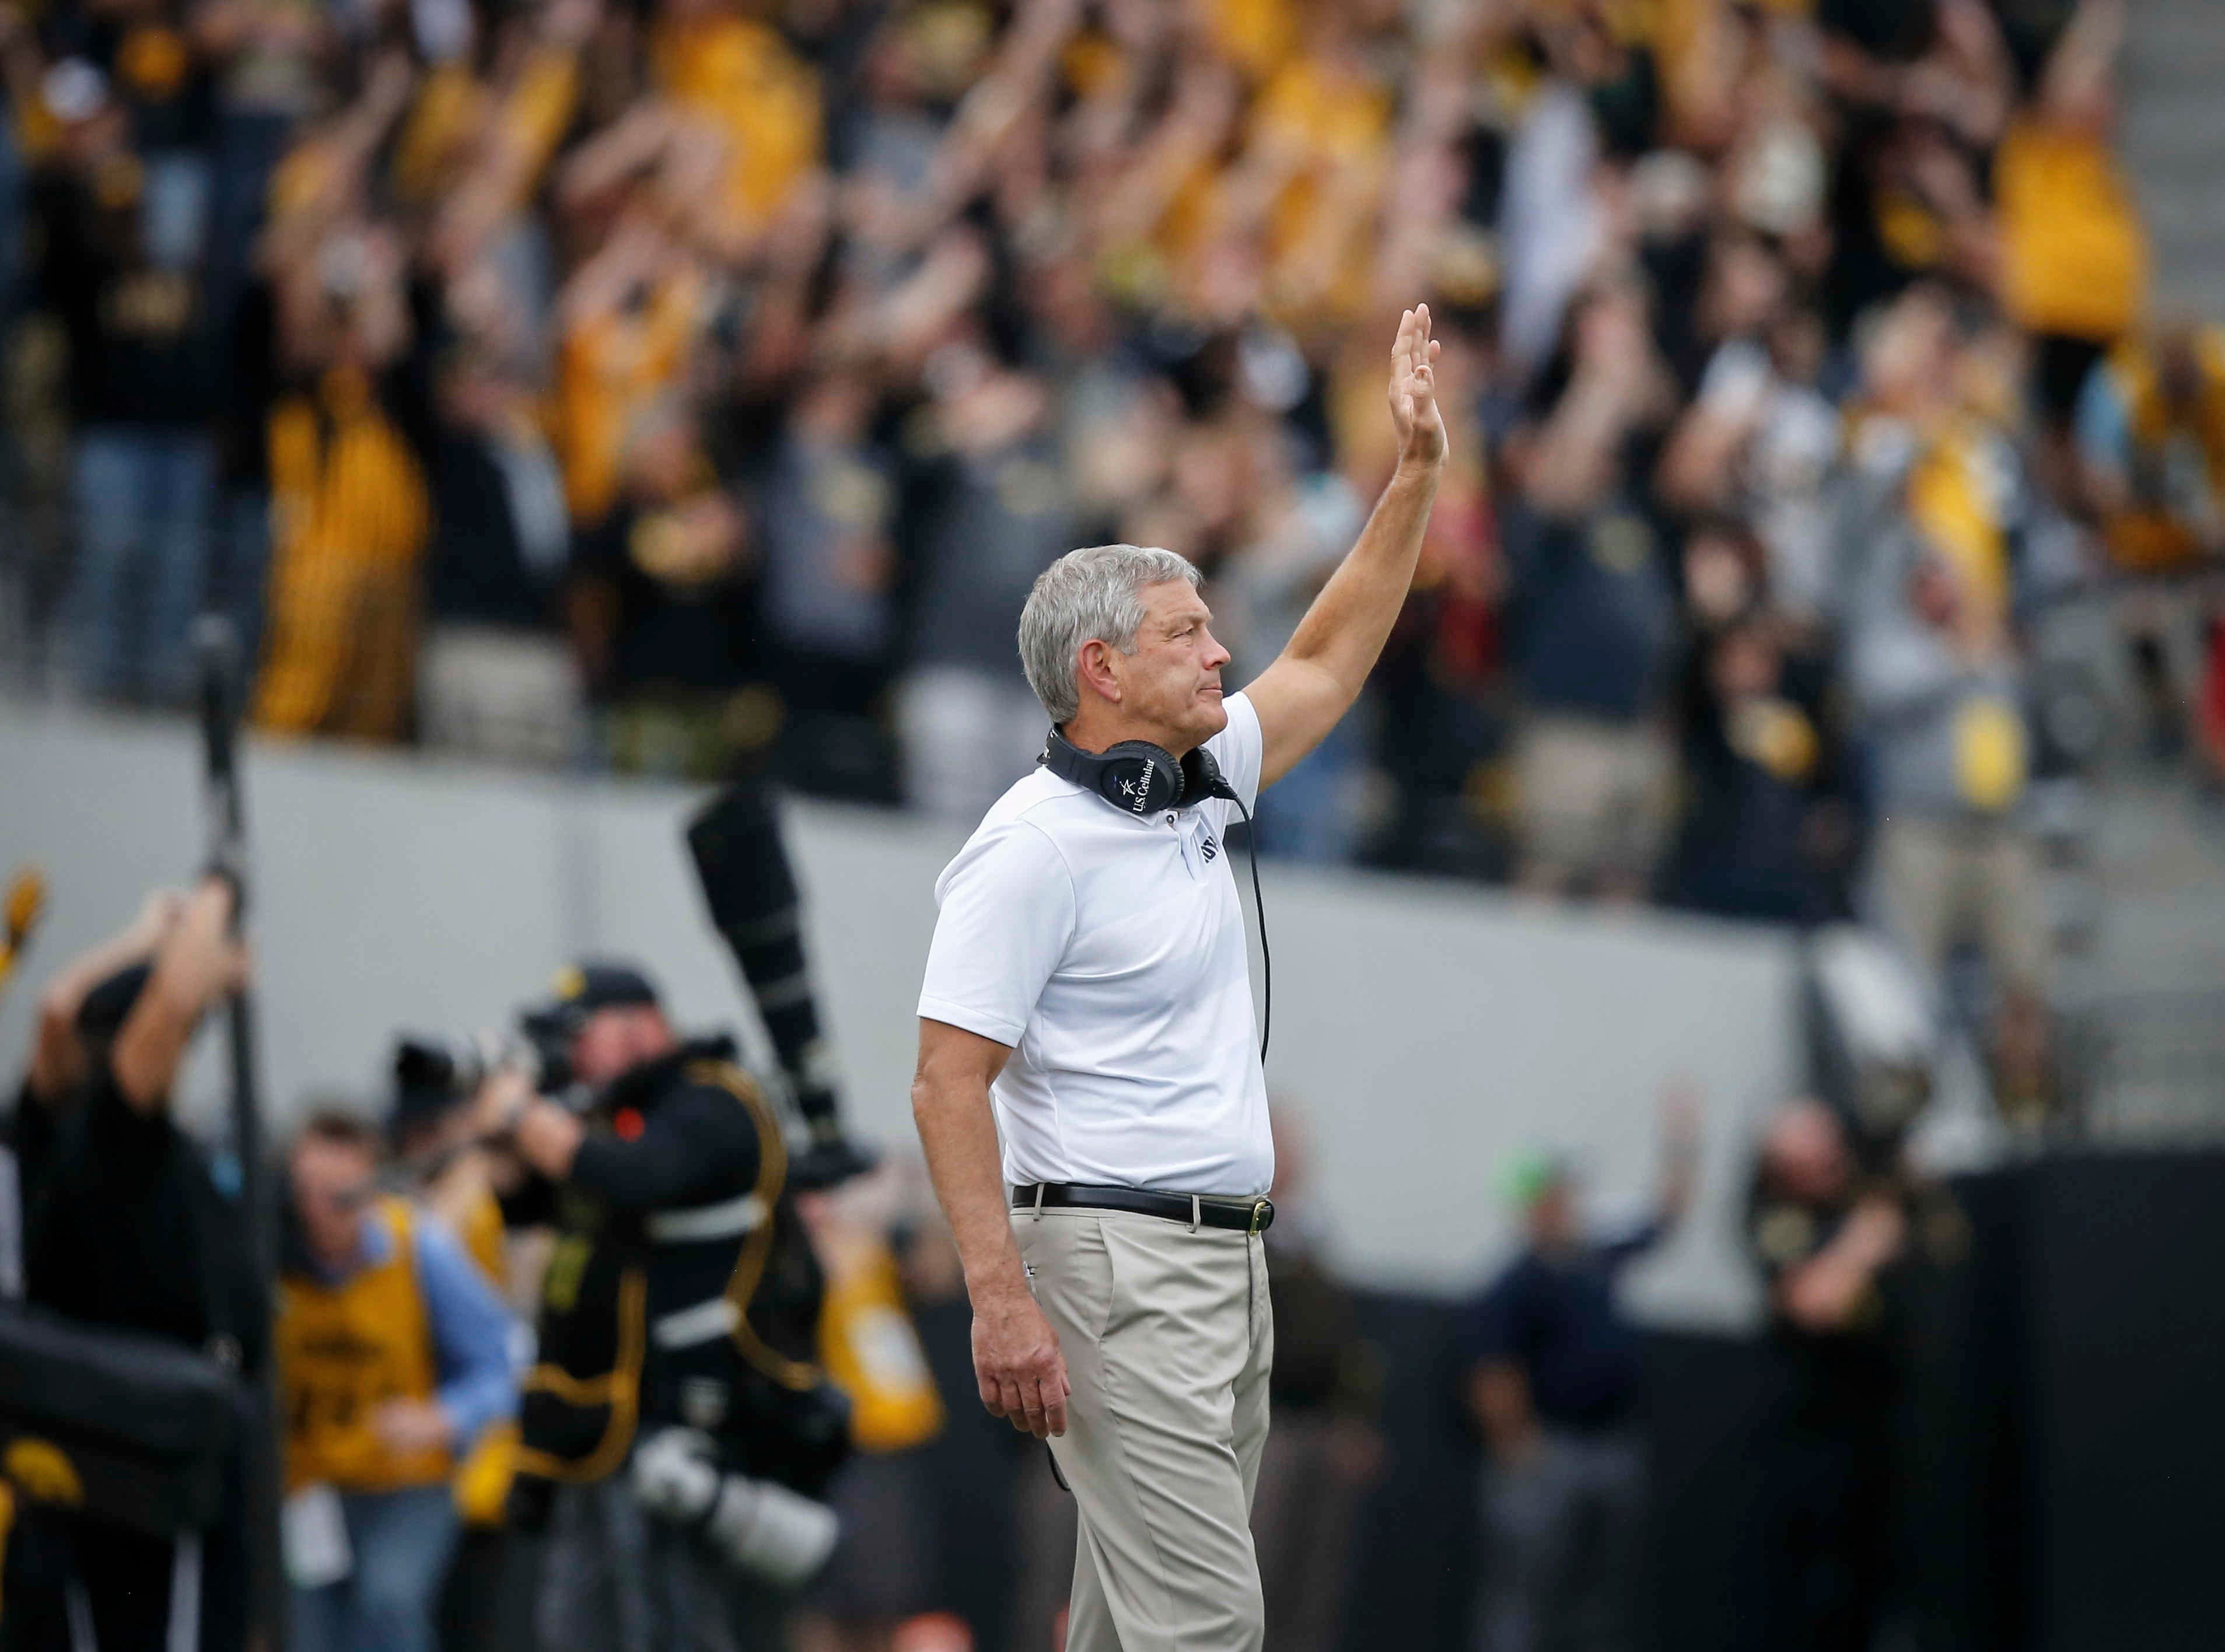 Iowa head football coach Kirk Ferentz waves to the Stead Family Children's Hospital during the first quarter wave against Iowa State on Saturday, Sept. 8, 2018, at Kinnick Stadium in Iowa City.